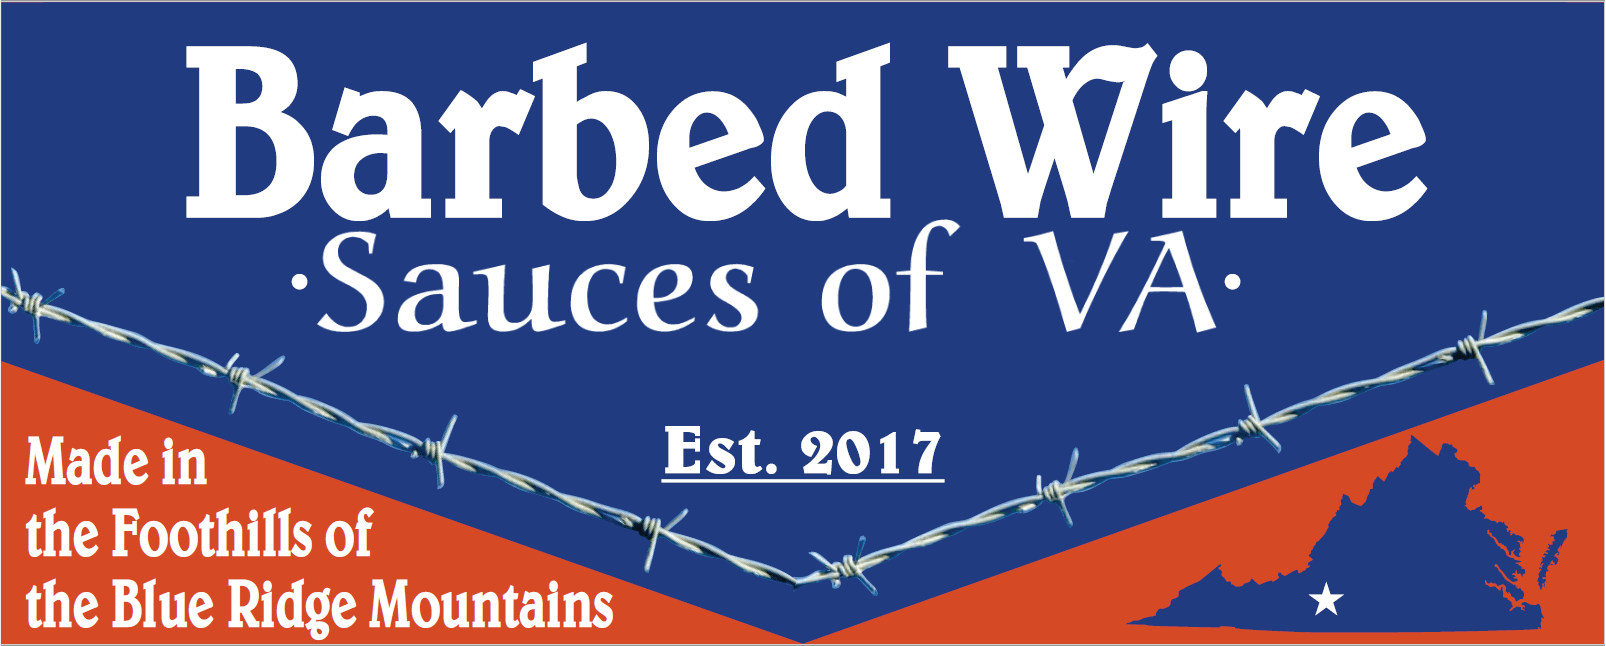 Barbed Wire Sauces of VA